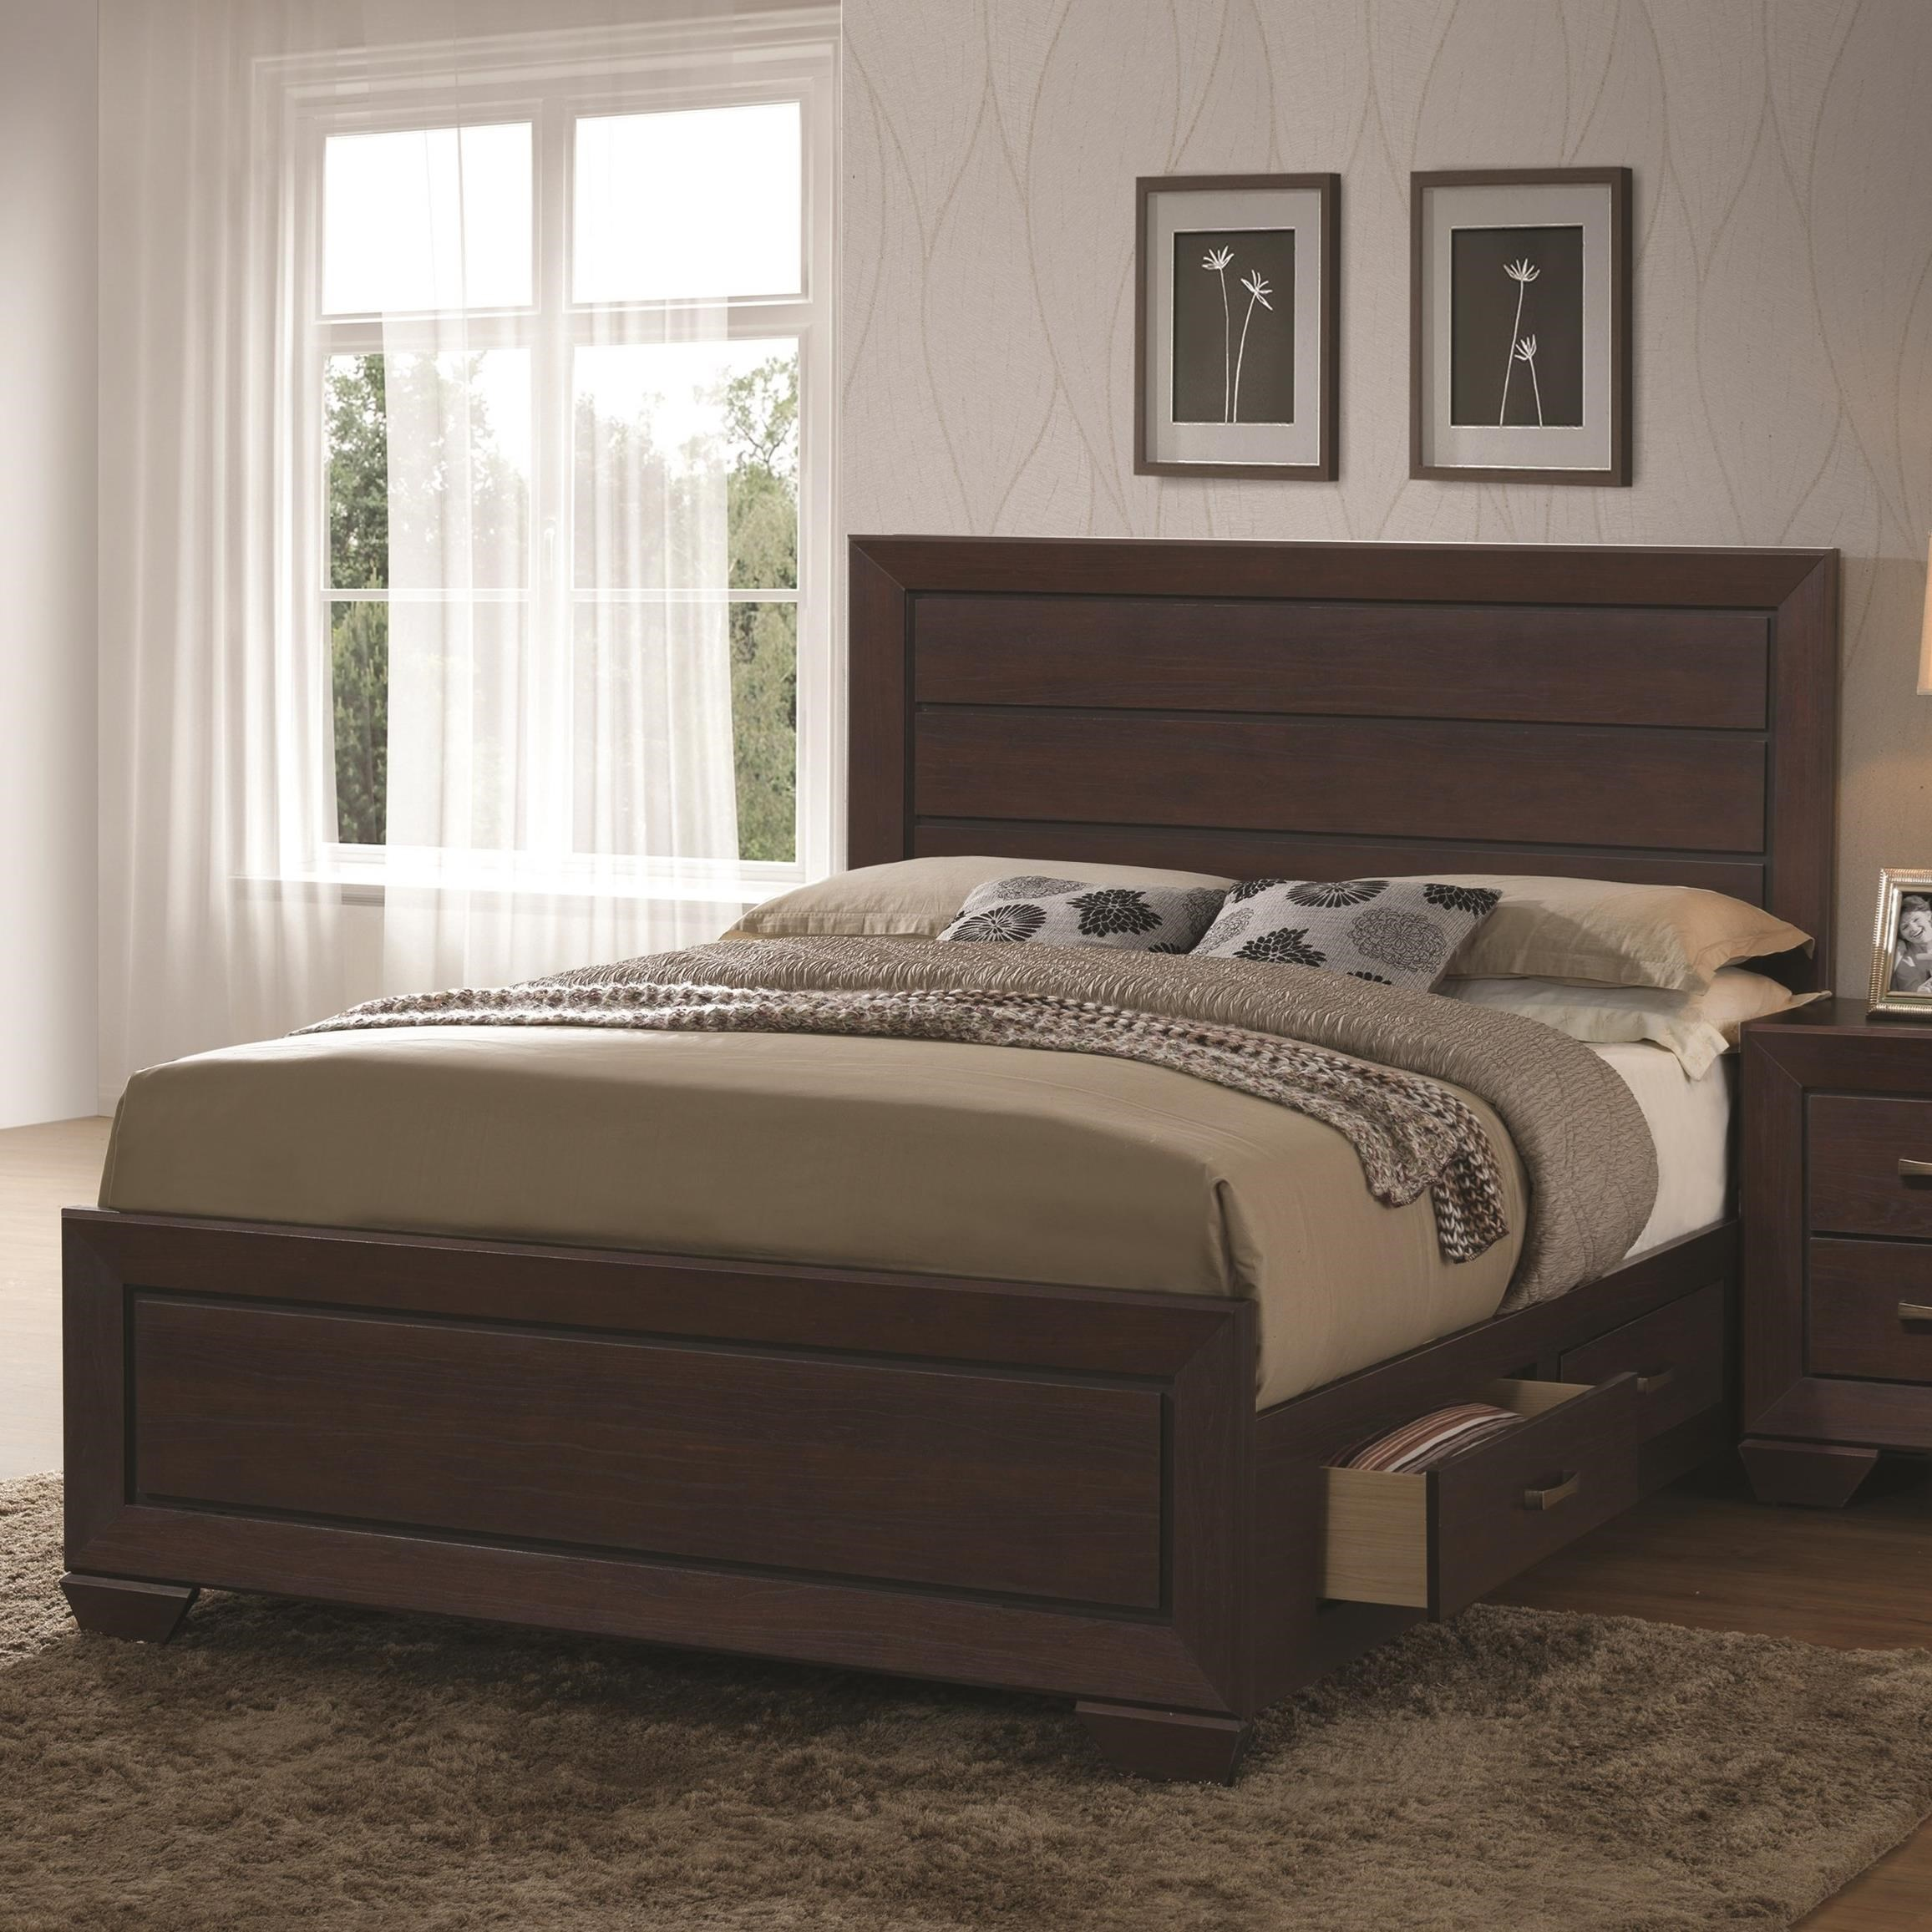 Fenbrook Eastern King Bed by Coaster at Northeast Factory Direct